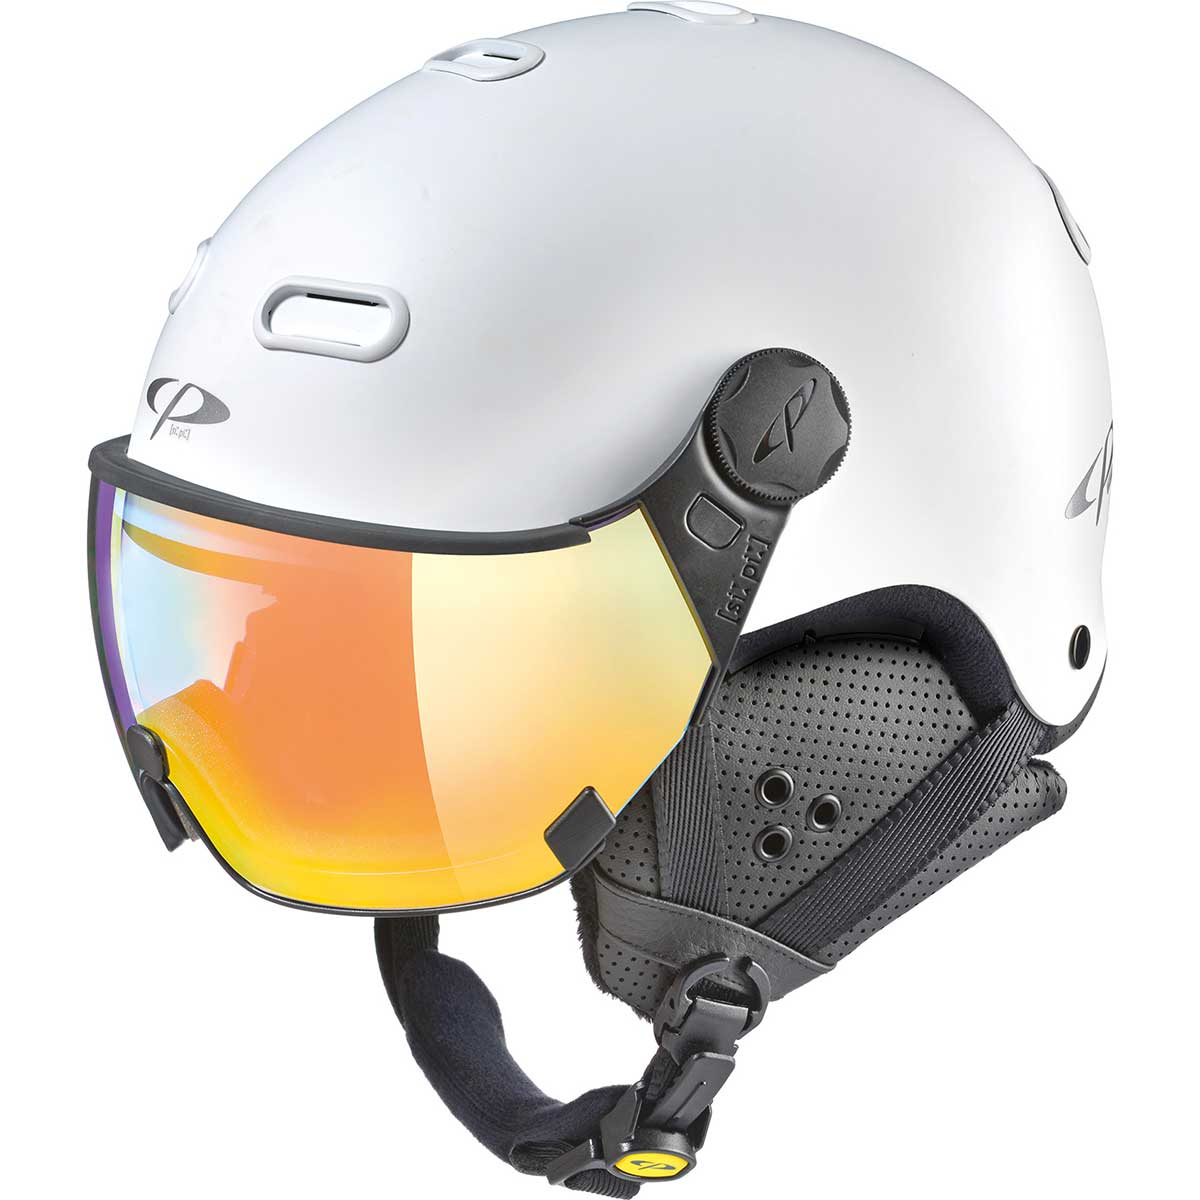 CP Carachillo Helmet in Vario Multicolor Mirror